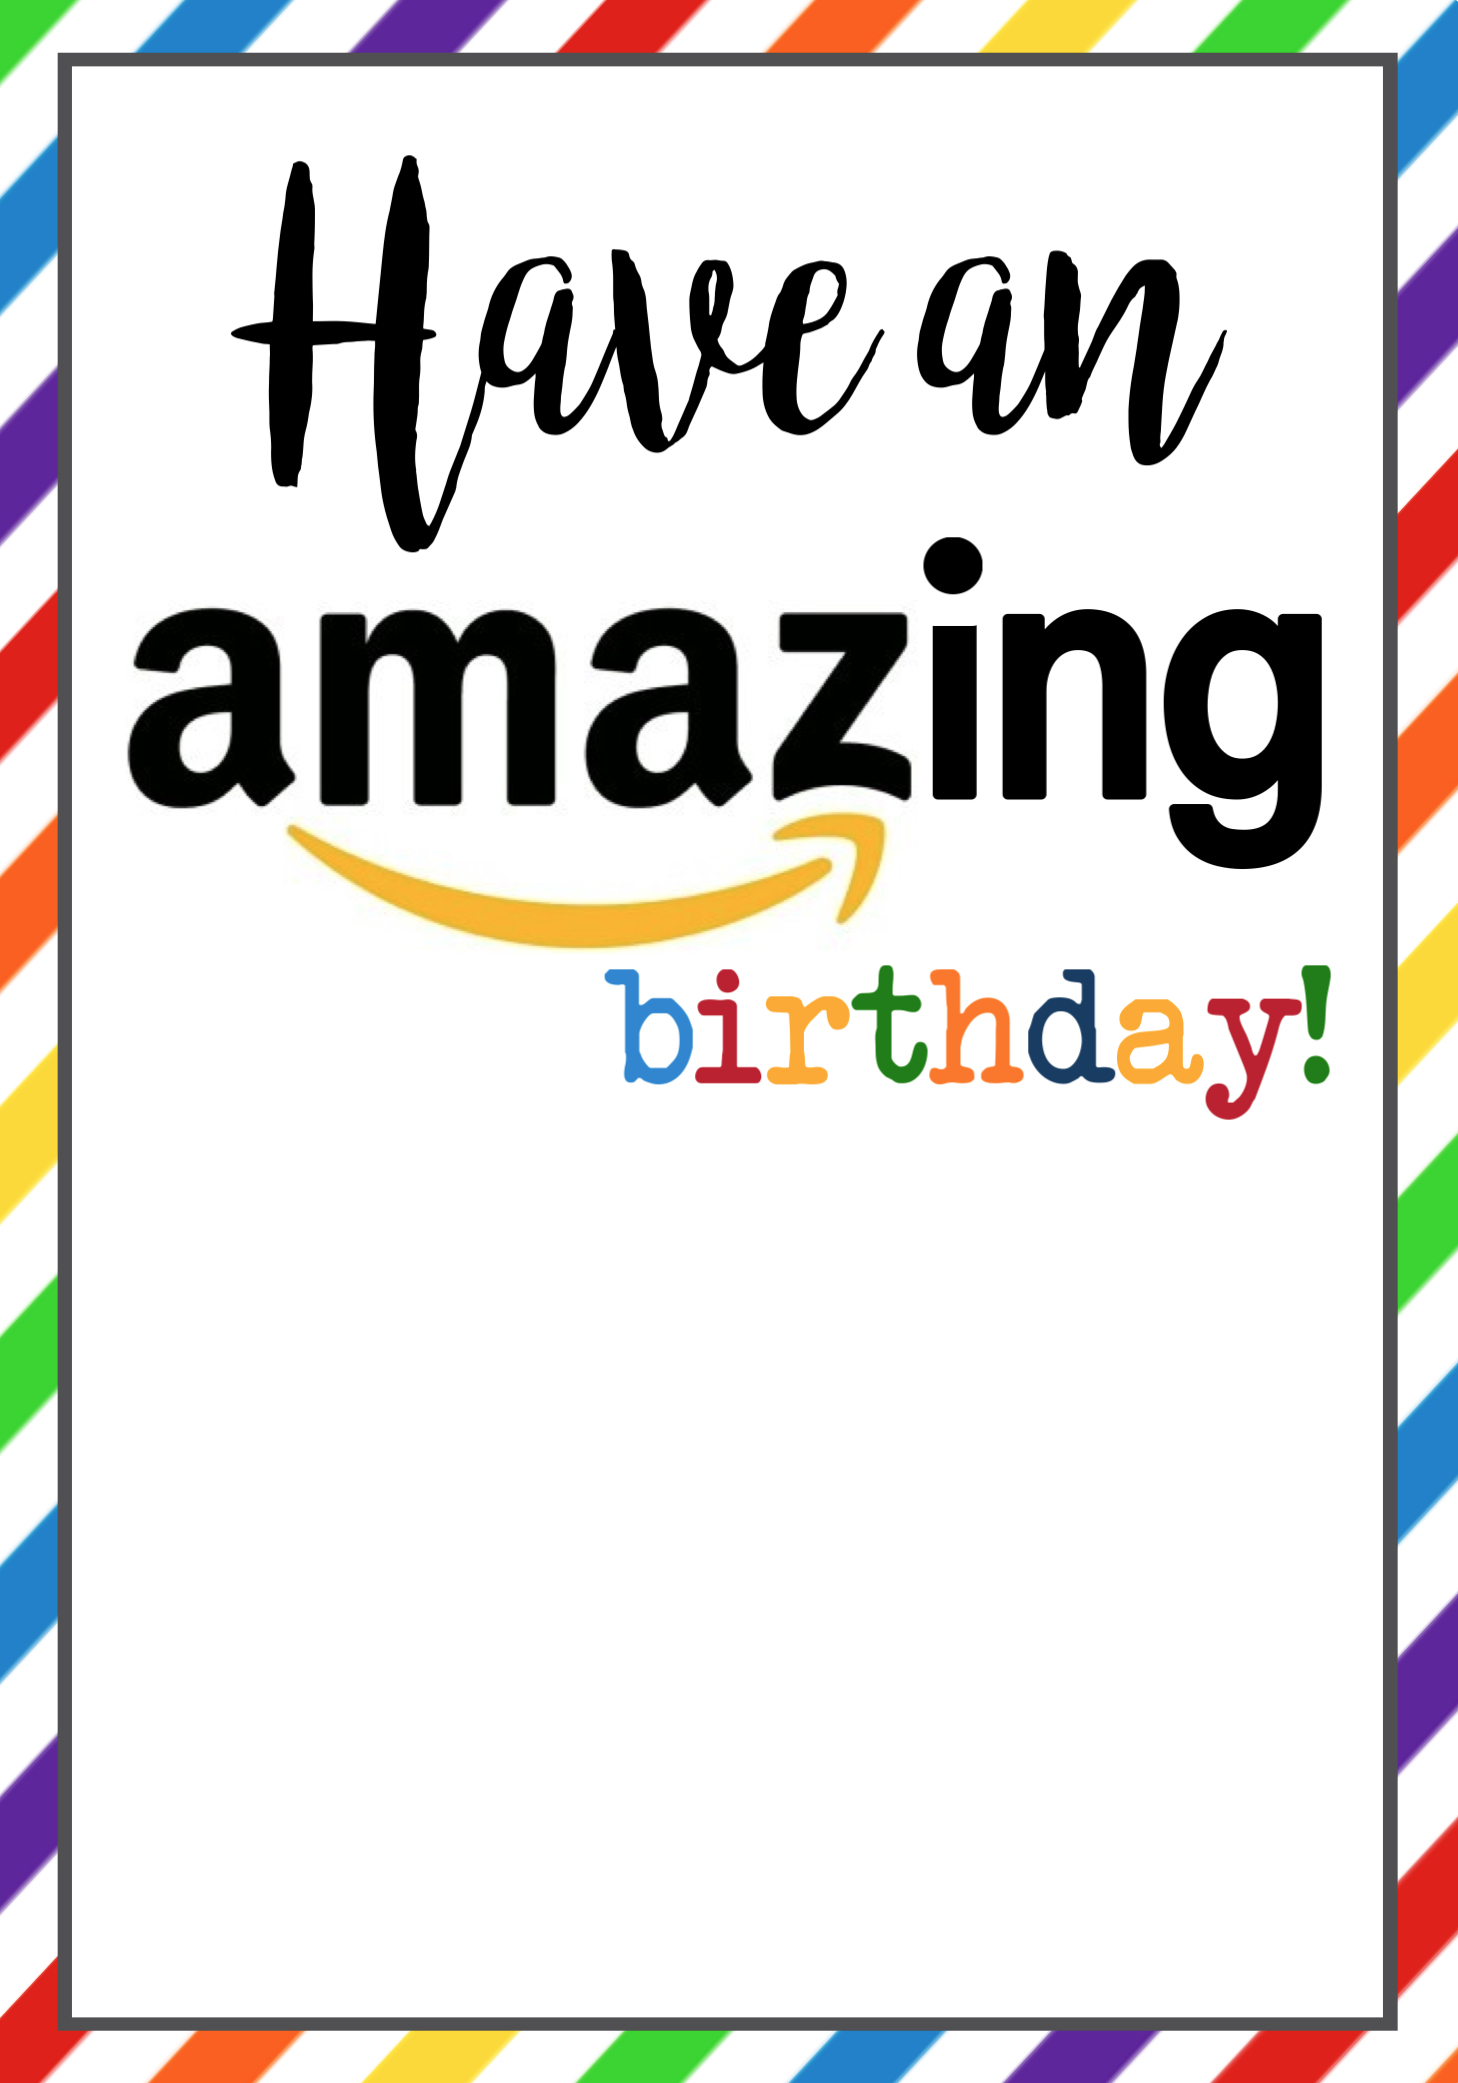 You Can Print The Amazon Birthday Gift Card On Back